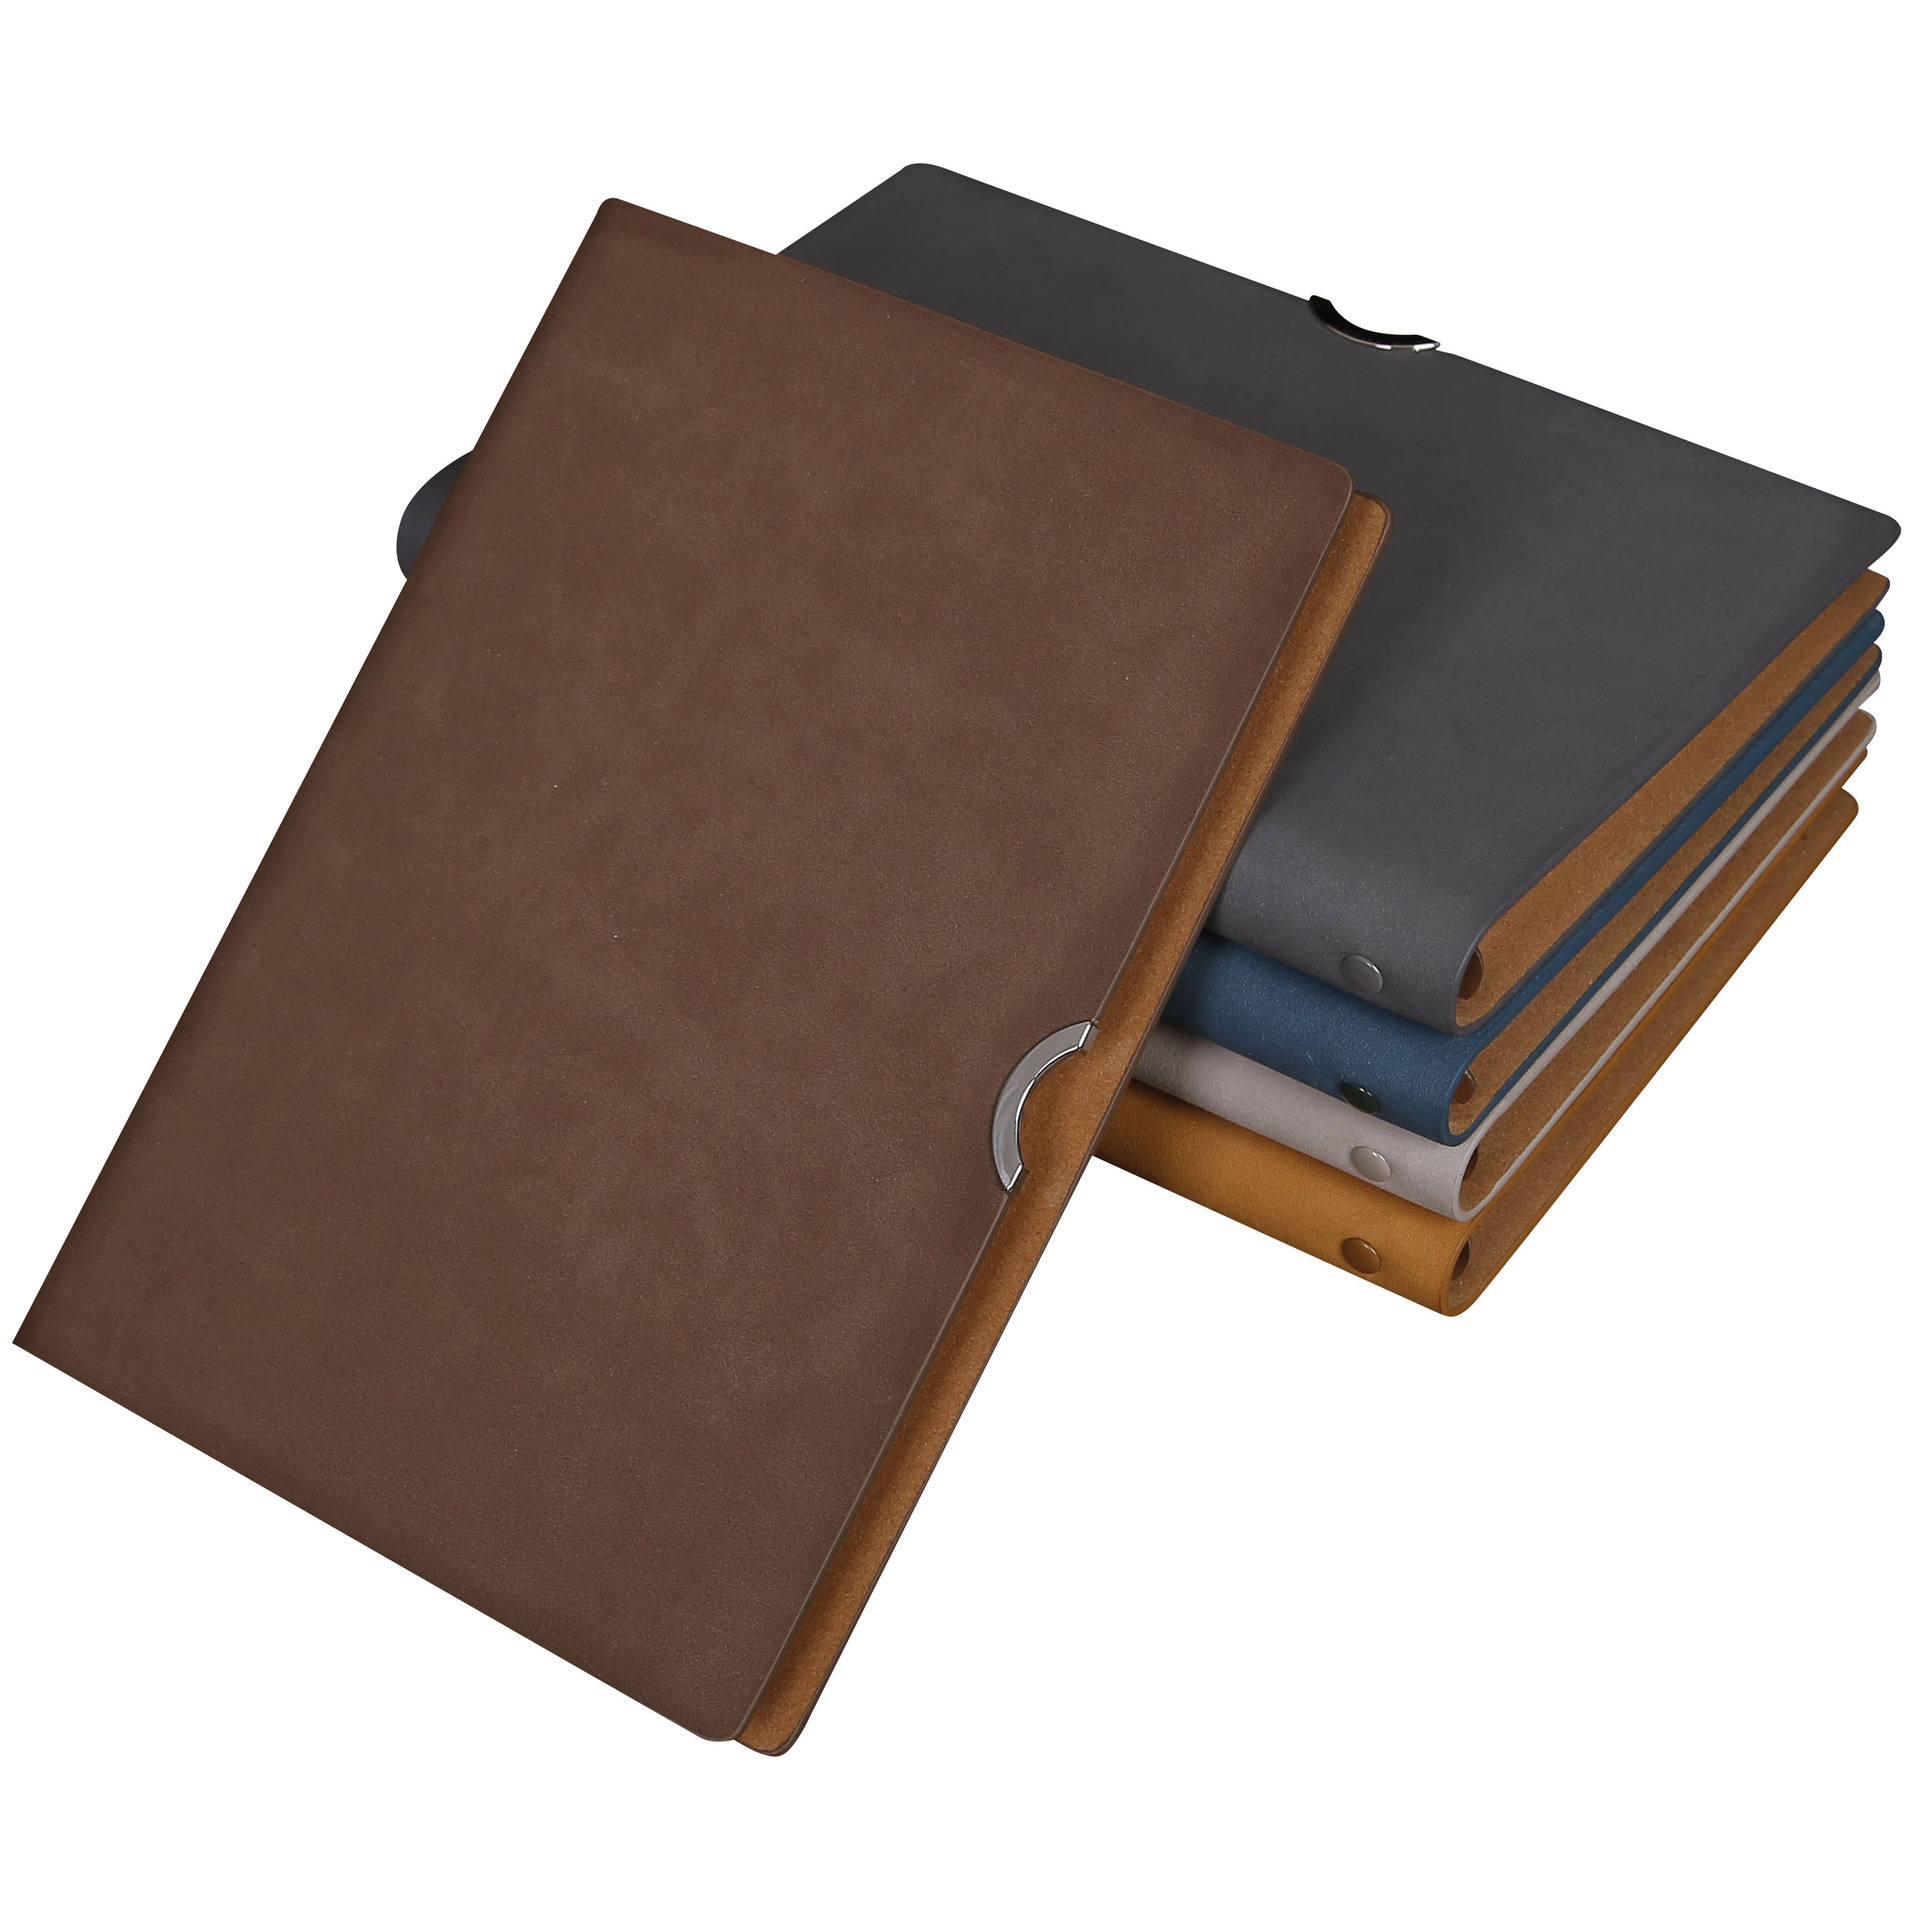 A5 Binder Journal Refillable 6 Round Ring Notebook Leather Loose Leaf Binder Spiral Diary Notebook